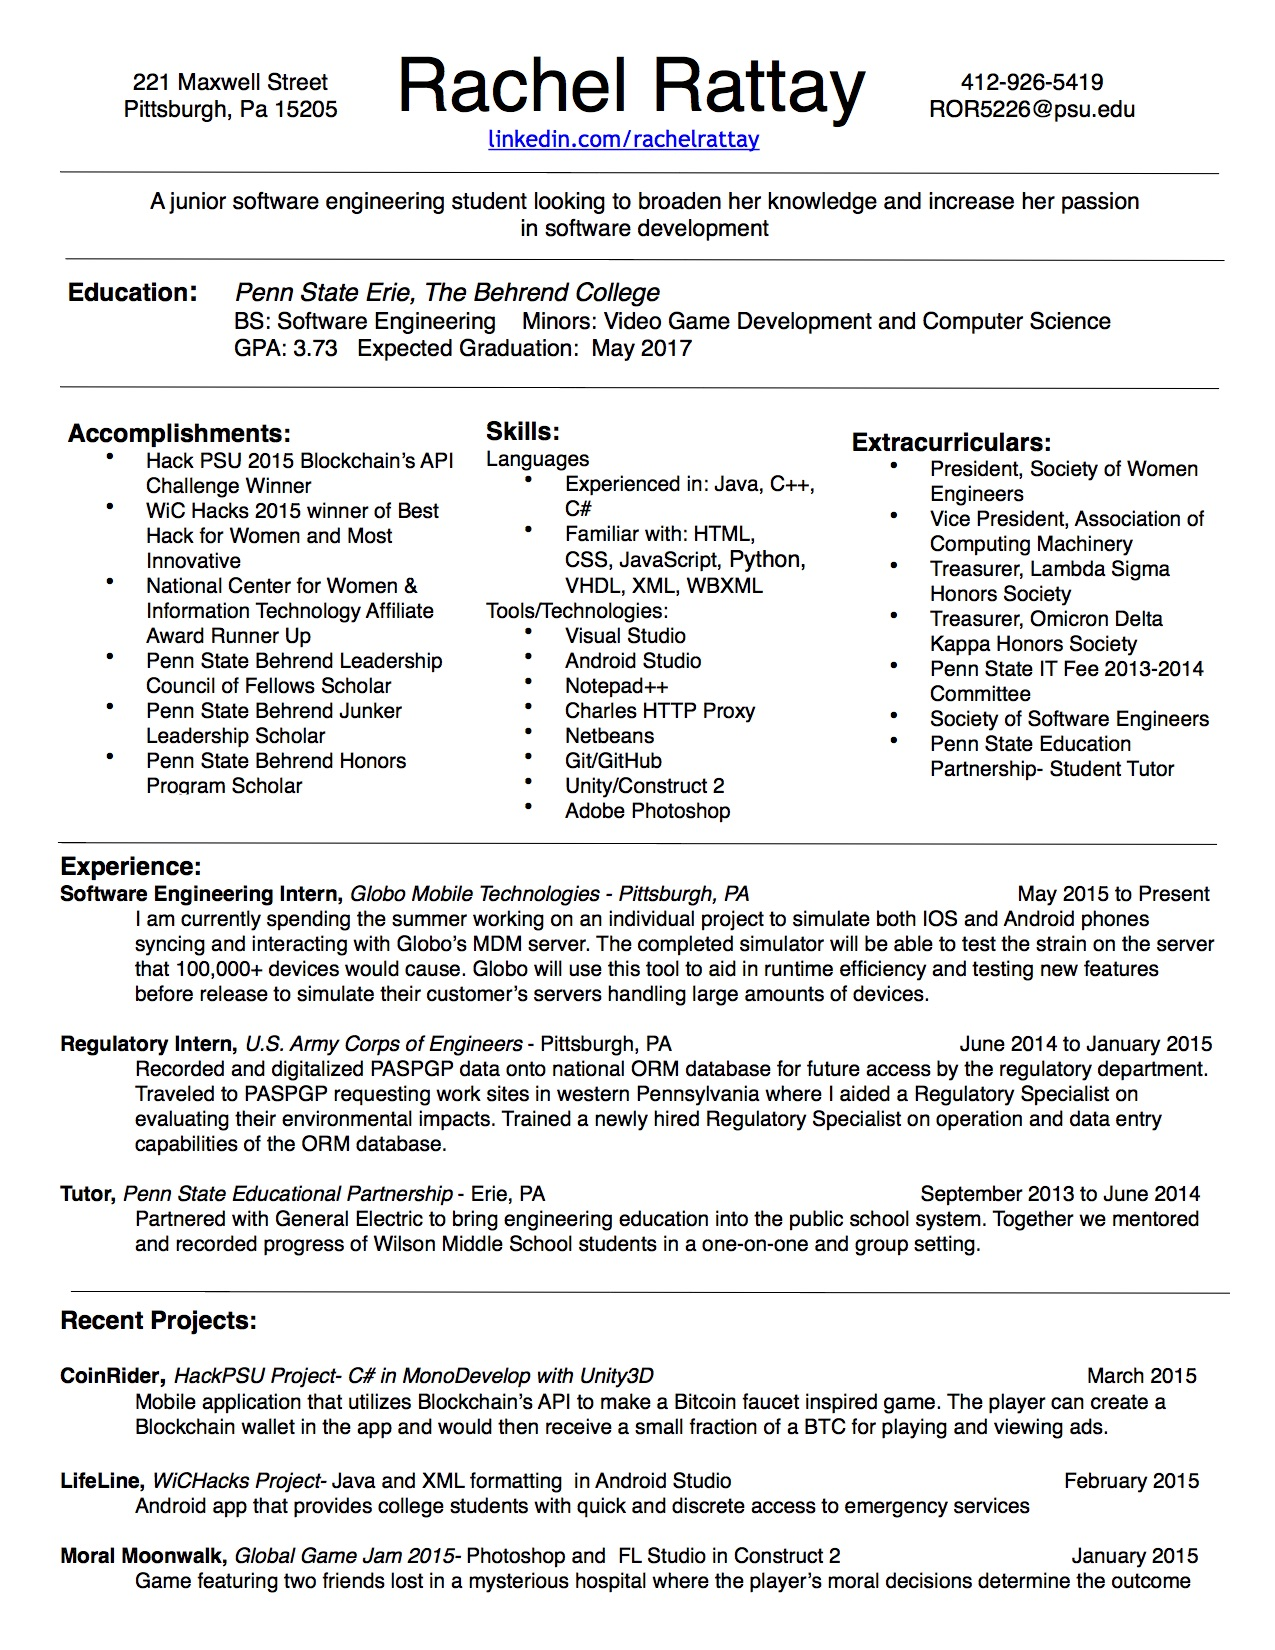 Penn career services resume help